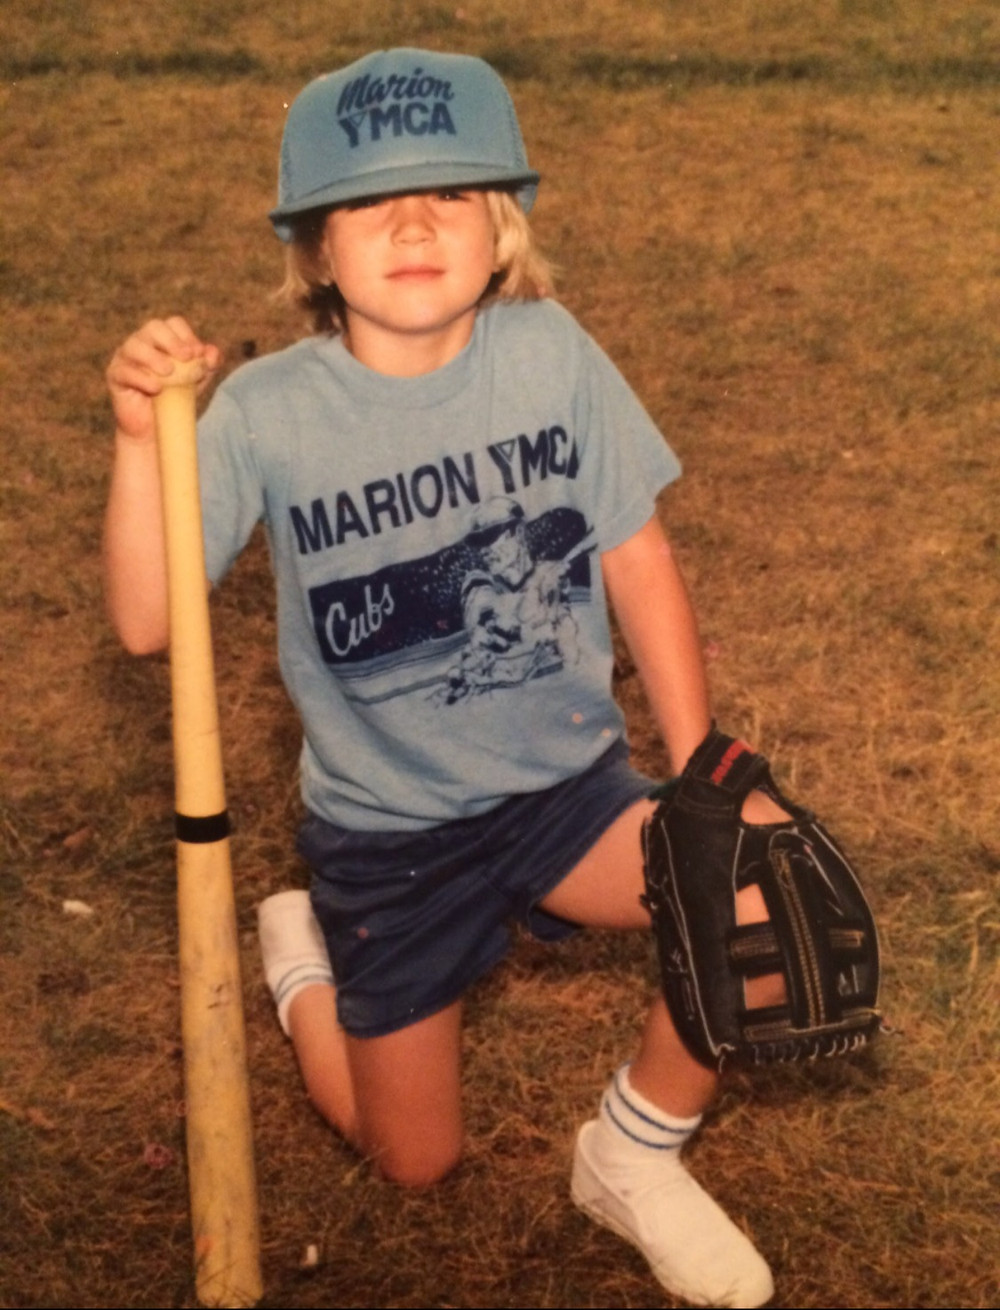 Bex Drate as a small t-ball player.